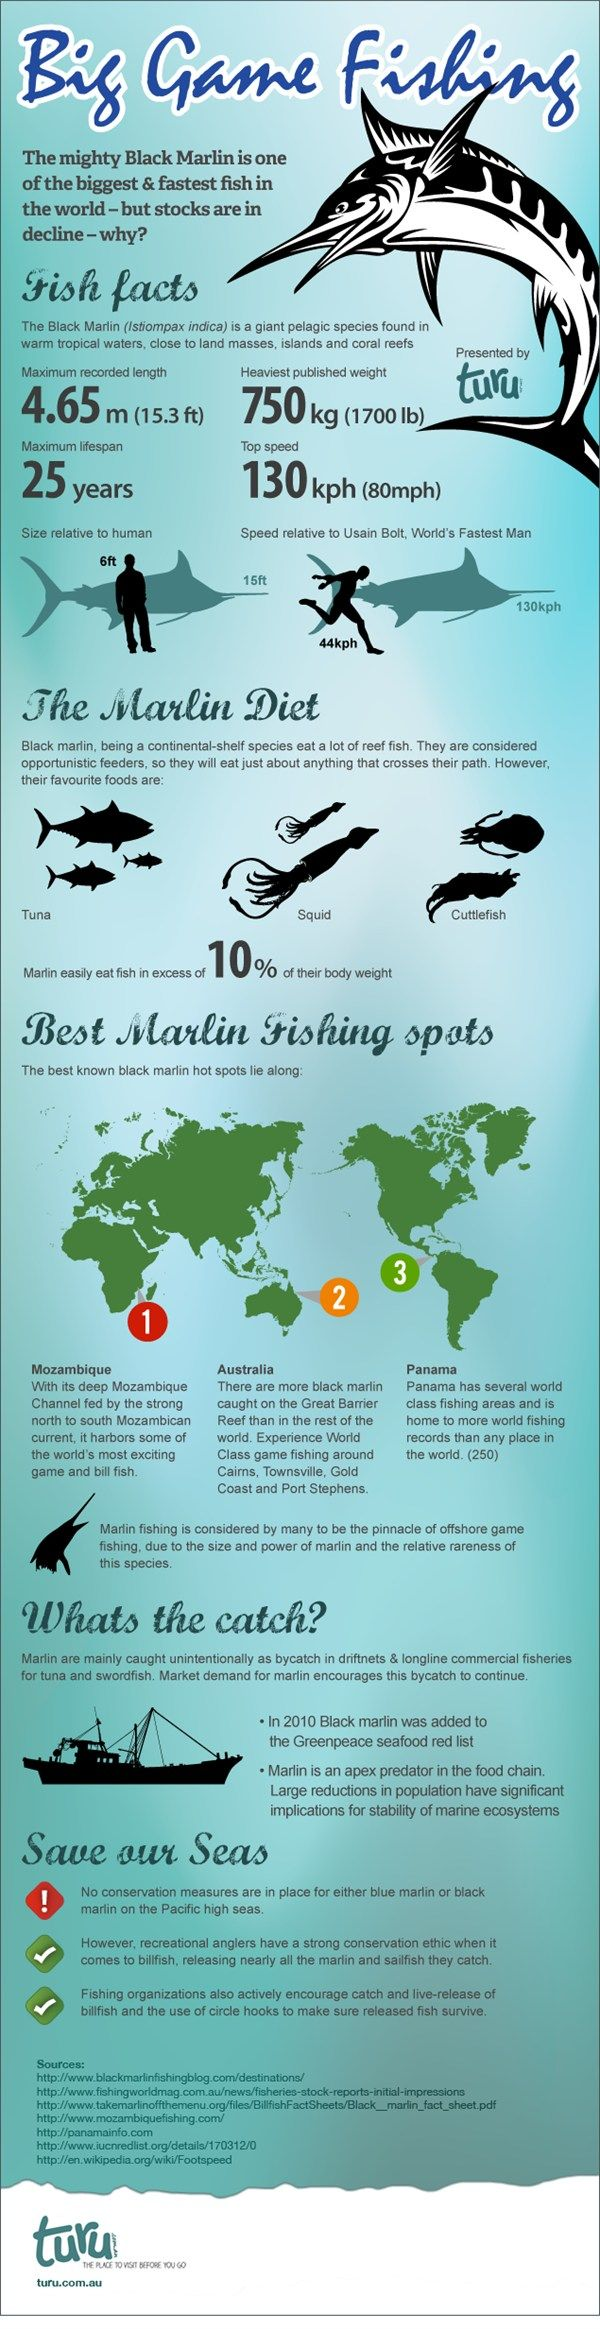 """The Ultimate Catch, Black Marlin -   The infographic """"Big Game Fishing"""" by Turu Caravan Parks offers an insight to big game fishing of the black marlin. It highlights some interest facts on the fish, the best spots in the world for black marlin fishing and provides information on ... Read more."""